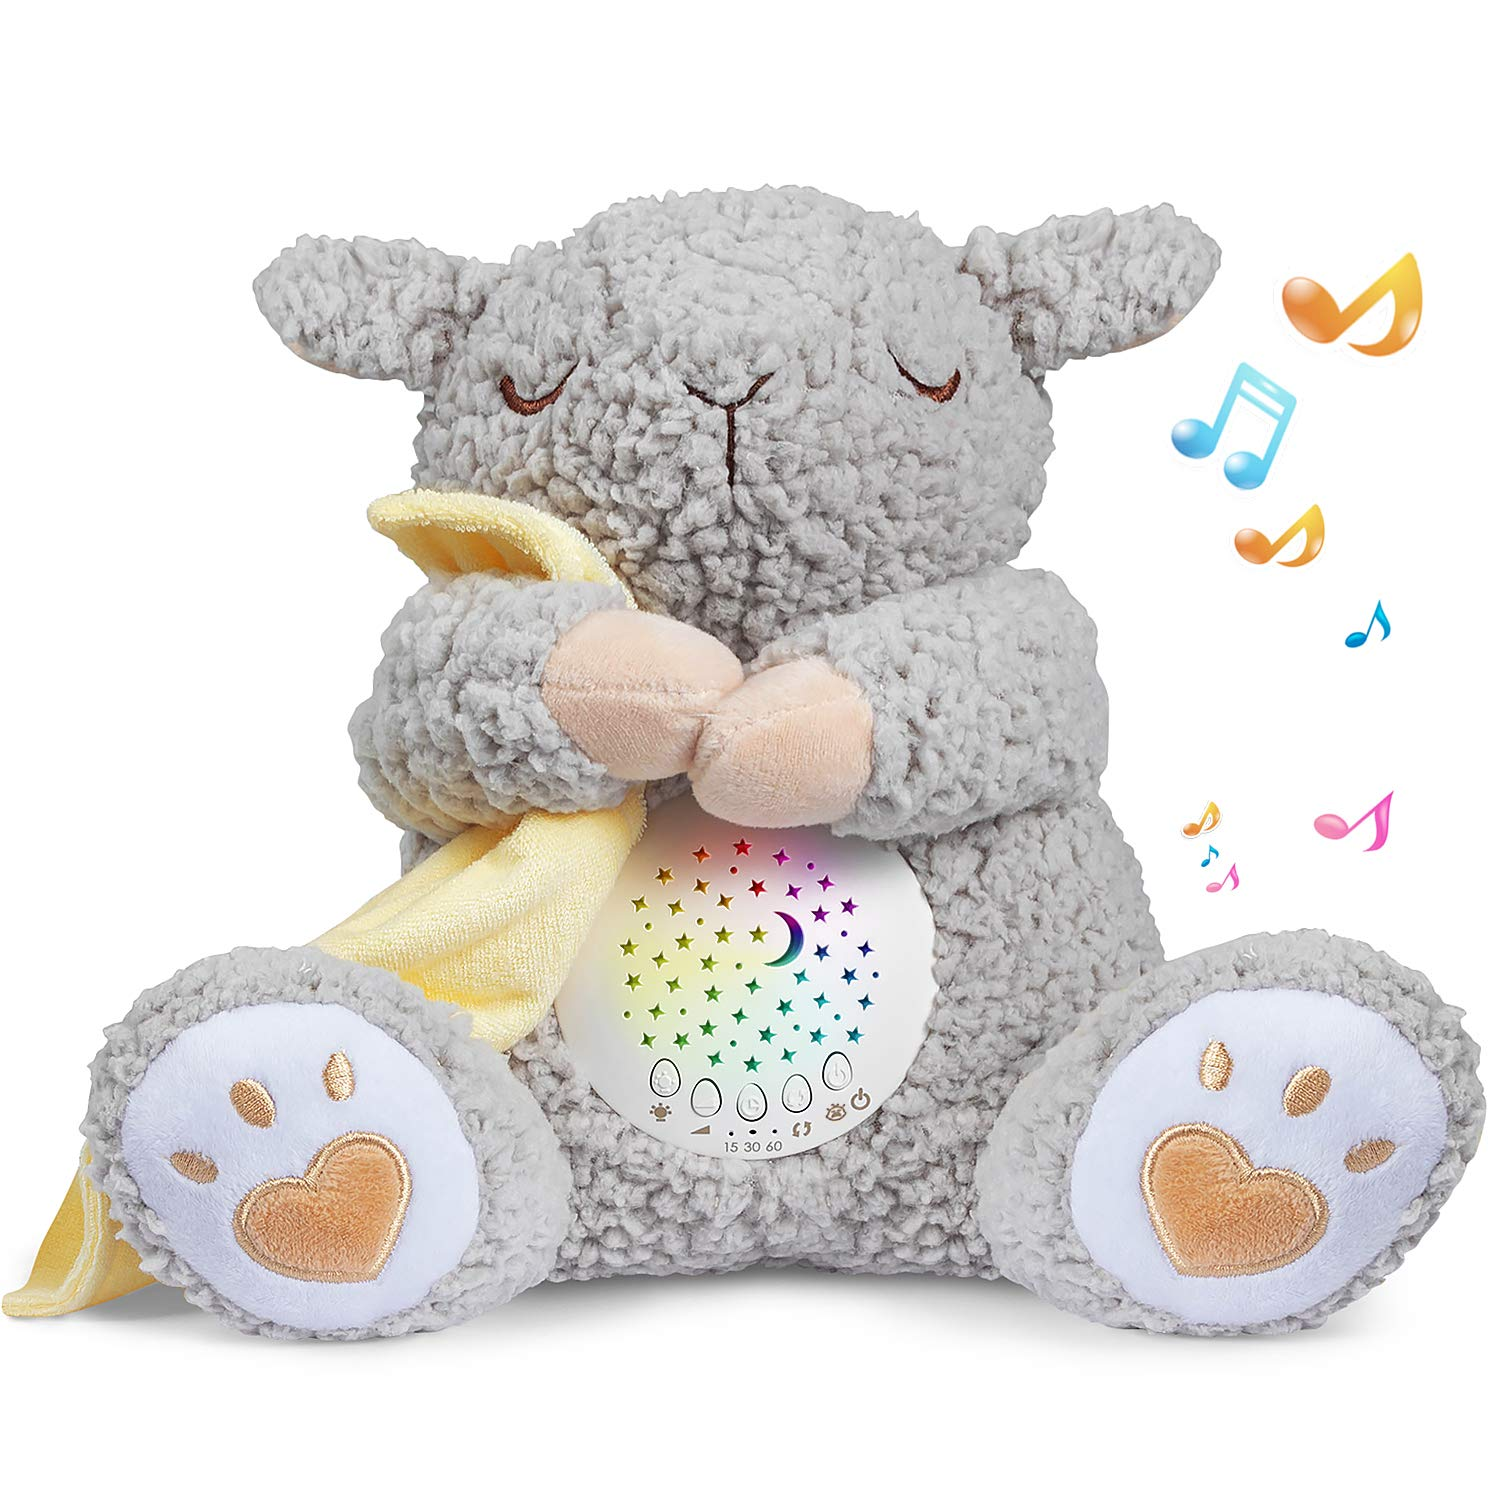 BEREST Rechargeable Dreamy Sheep, Baby Cry Sensor Mom's Heartbeat Lullabies & Shusher White Noise Machine, Nursery Decor Night Light Projector, Toddler Crib Sleeping Aid, Baby Shower Gifts Portable